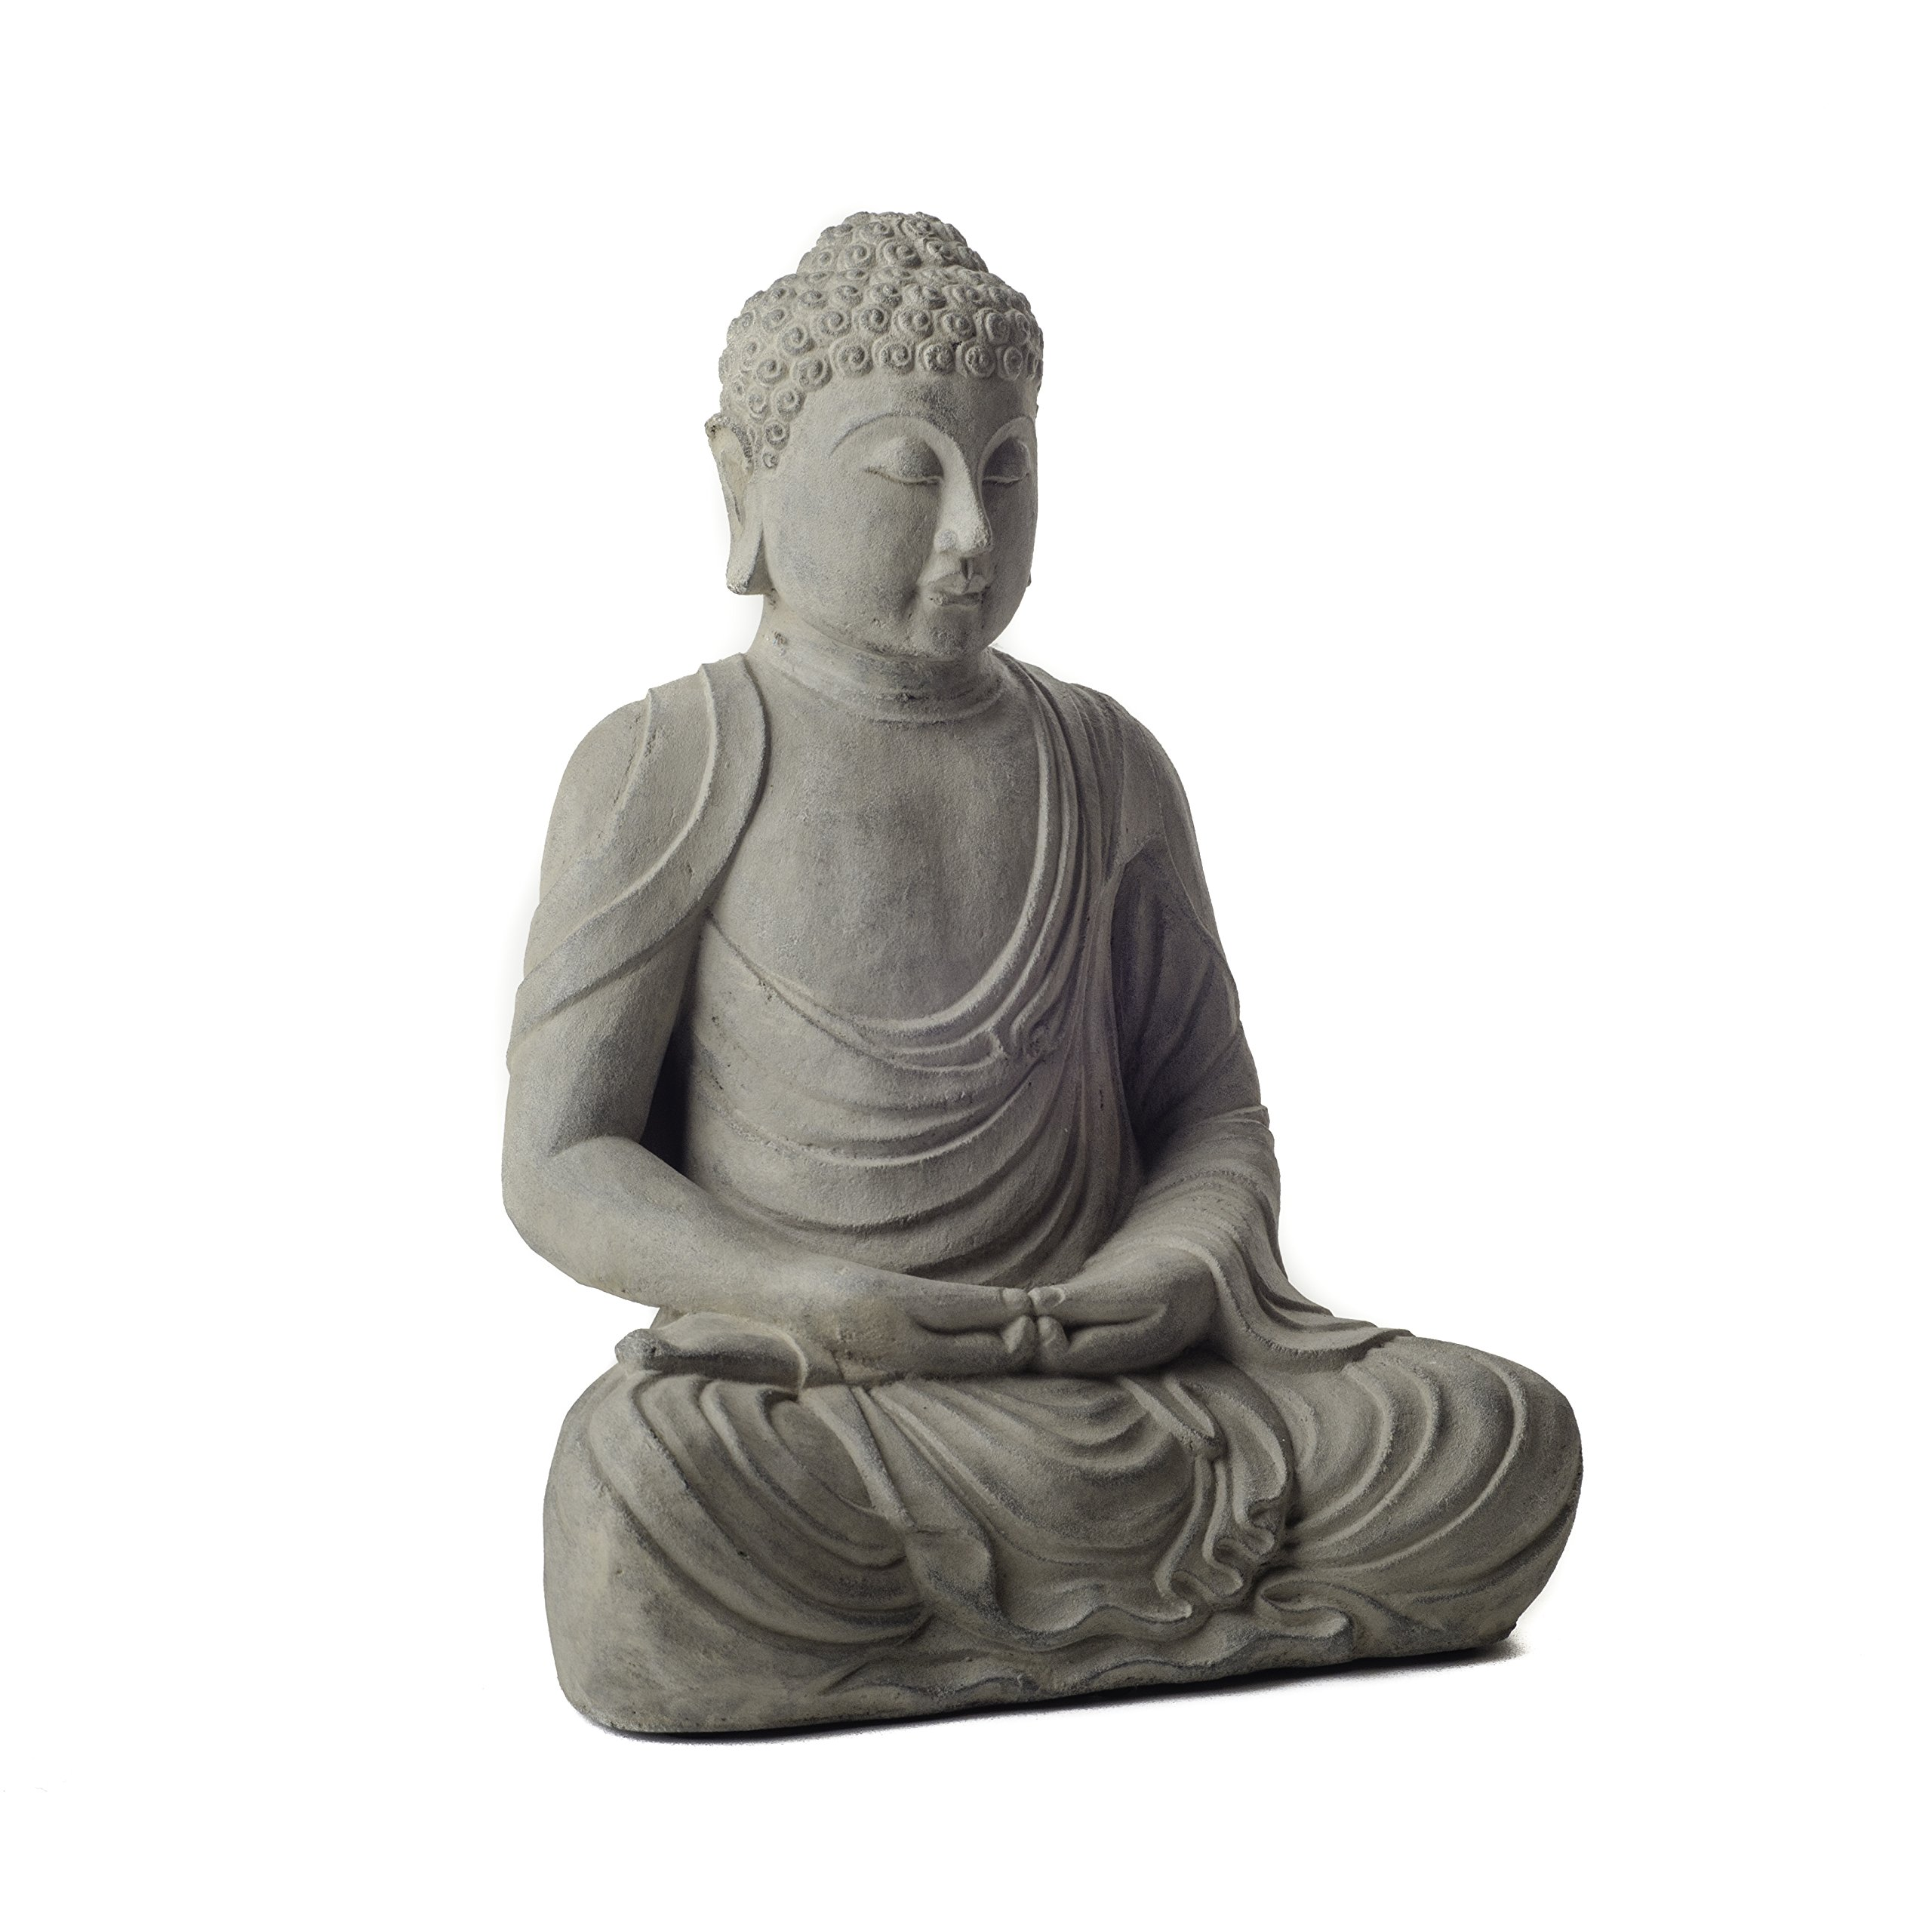 Repose ST10201758 Reflecting Buddha Outdoor Statues by Repose